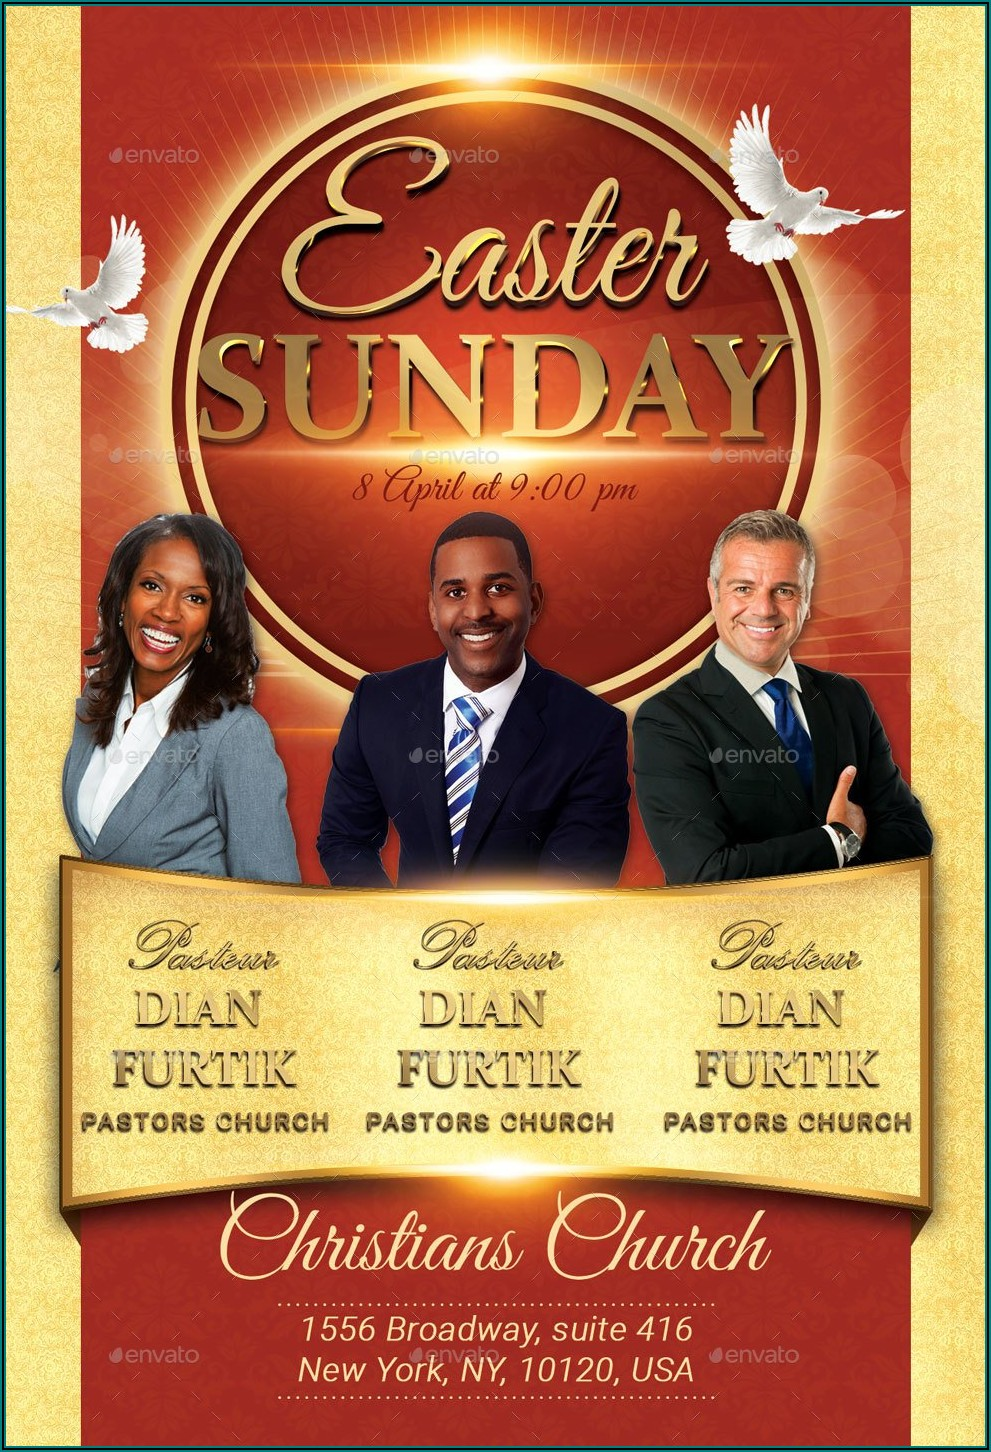 Download Church Flyer Template Psd Online For Free Without Payment